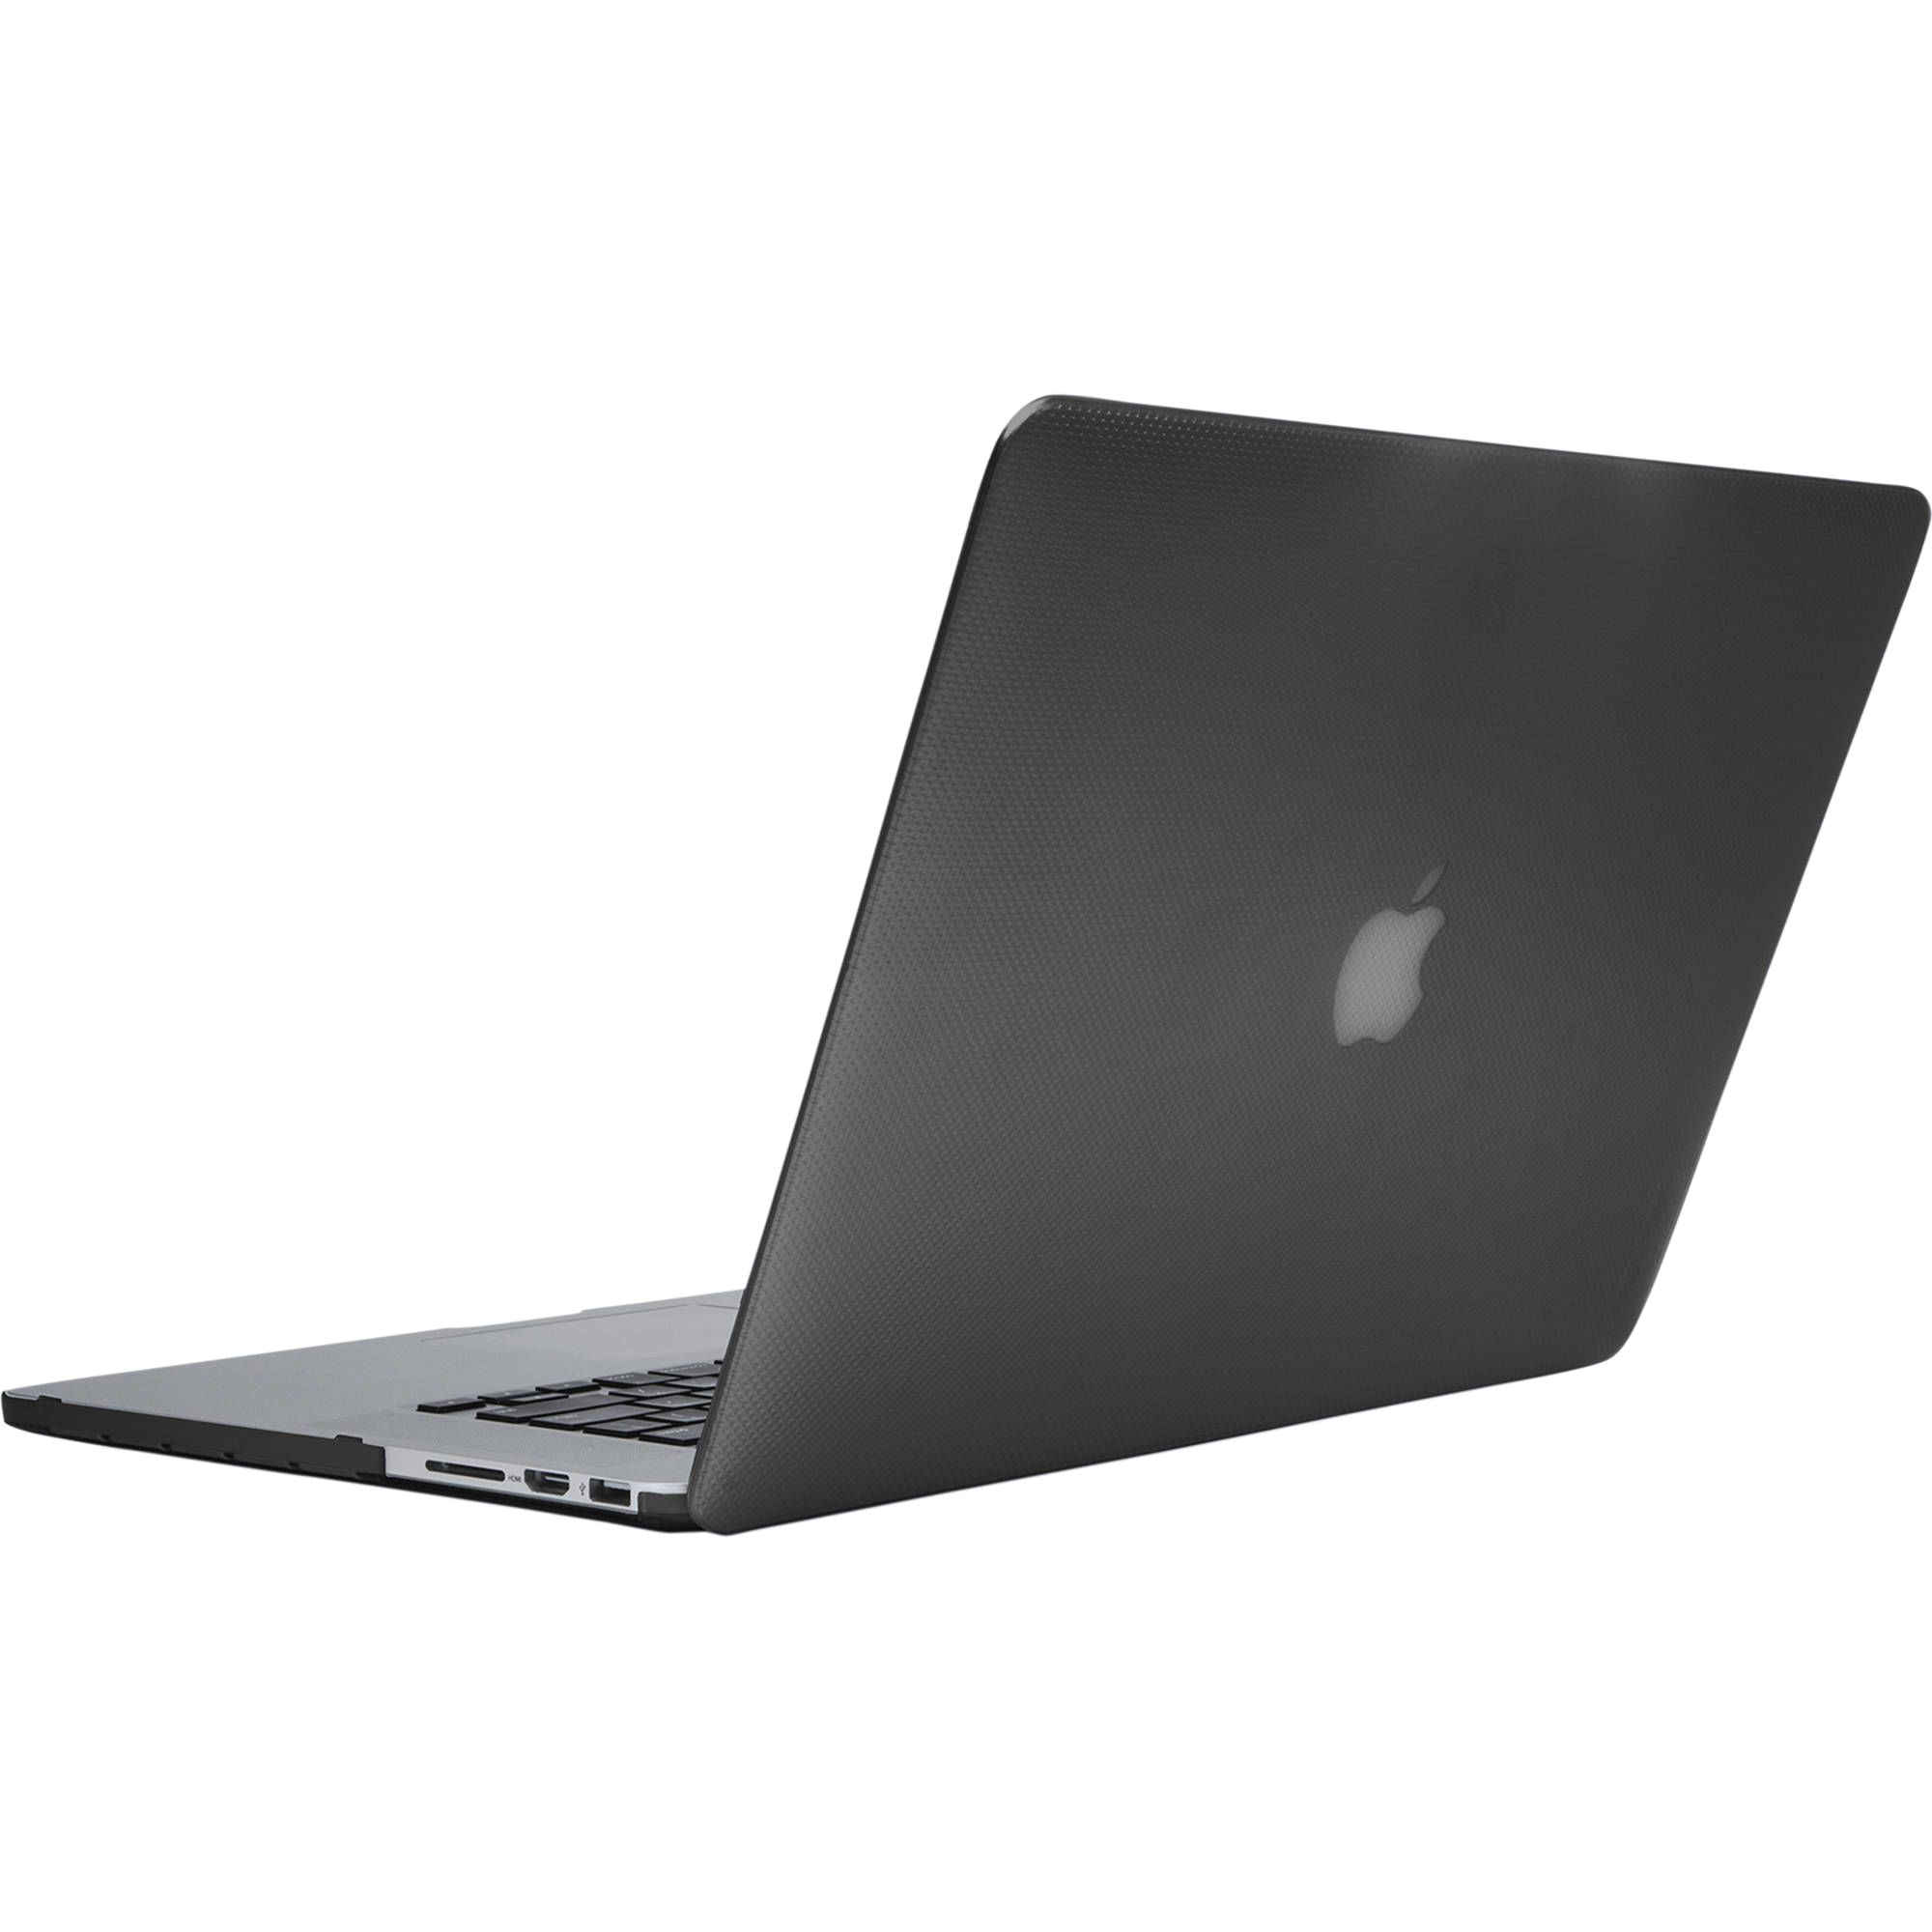 Laptop APPLE MacBook Air 2020 MVH22SA/A MVH22SA/A